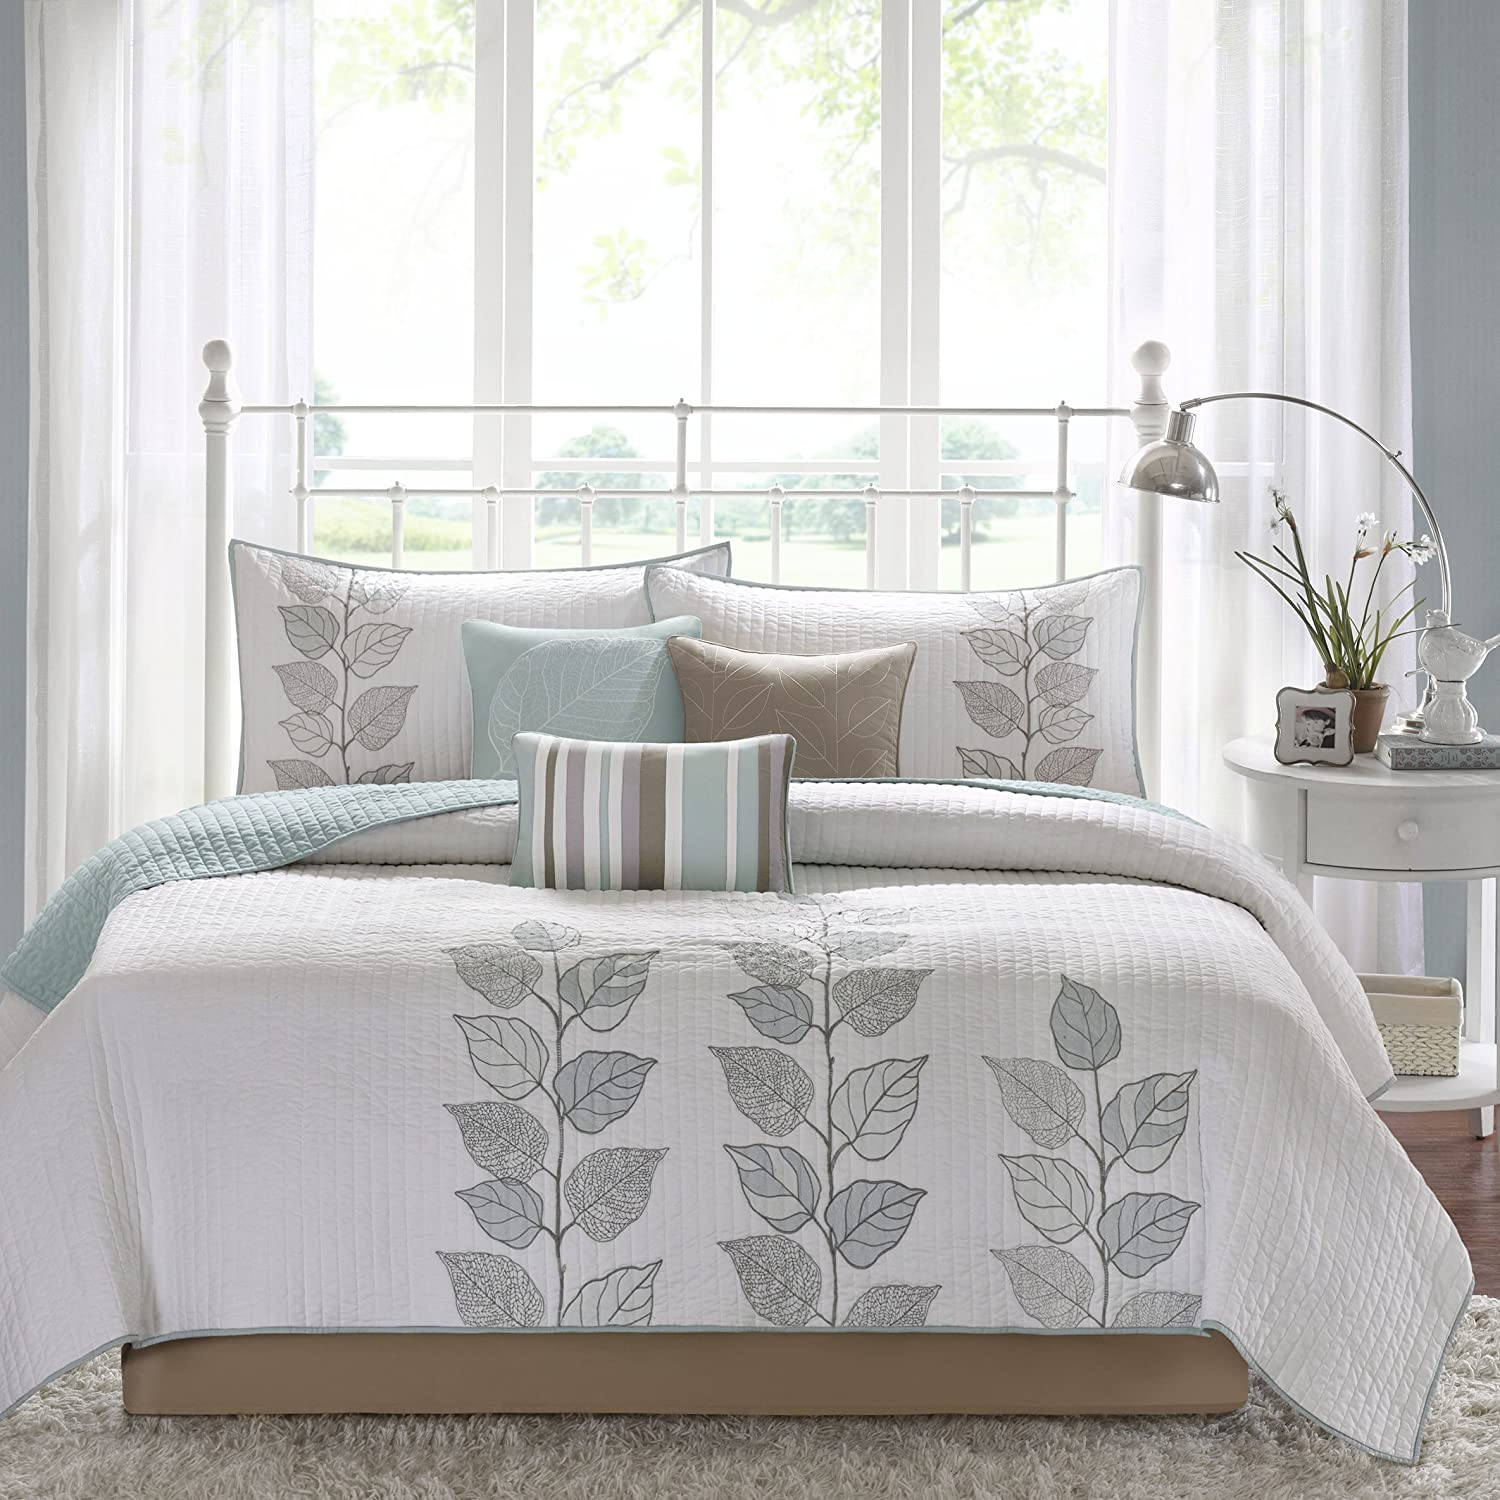 Madison Park Caelie King Size Quilt Bedding Set - Aqua, White, Leaf Embroidery – 6 Piece Bedding Quilt Coverlets